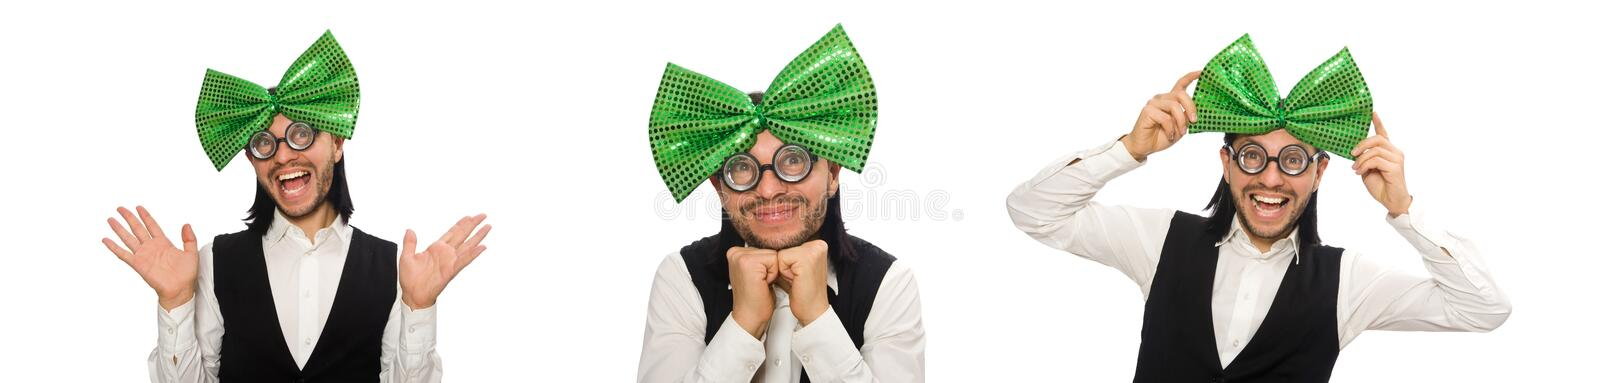 Man with big green bow tie in funny concept royalty free stock photos